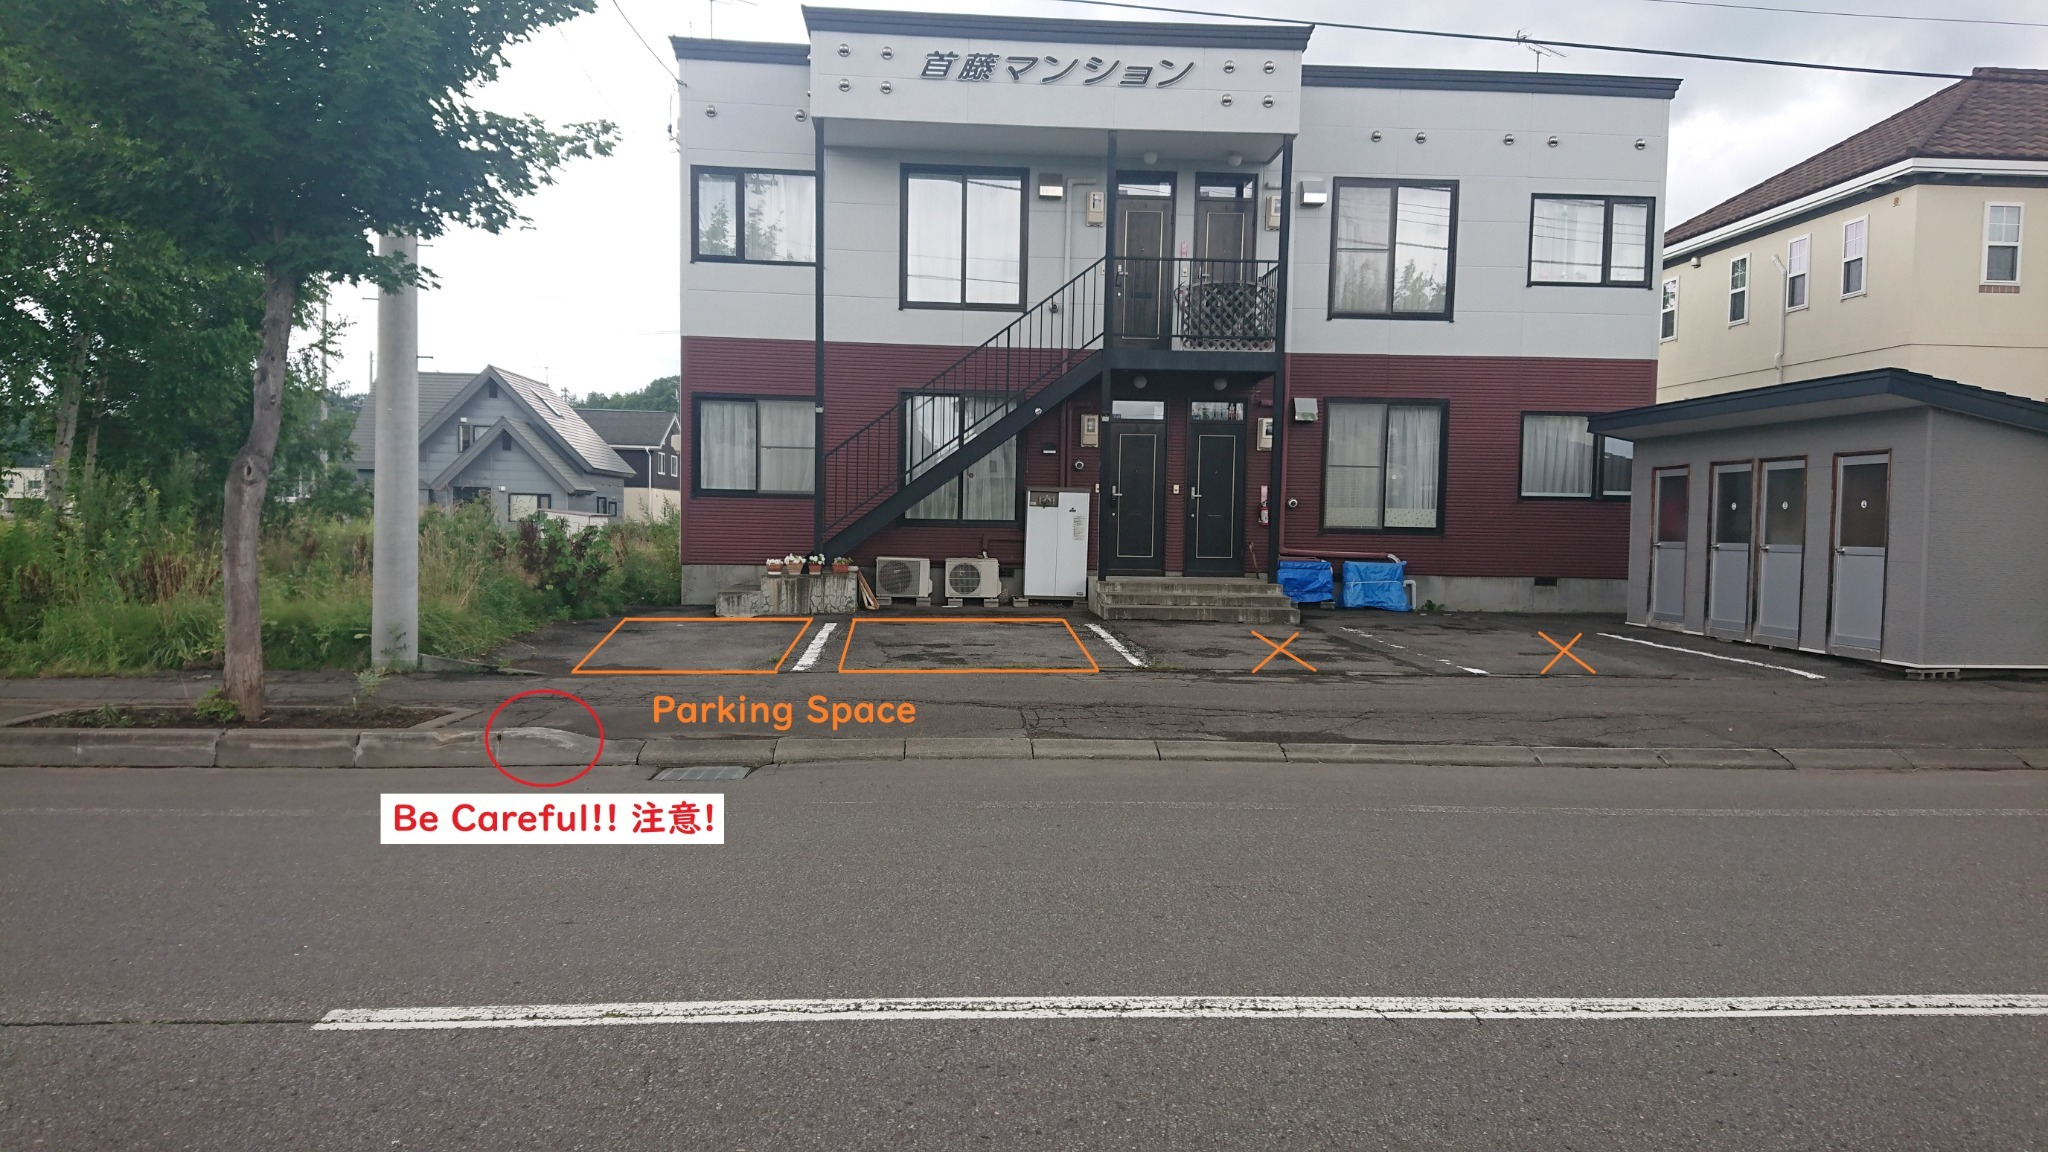 Parking Space 駐車場